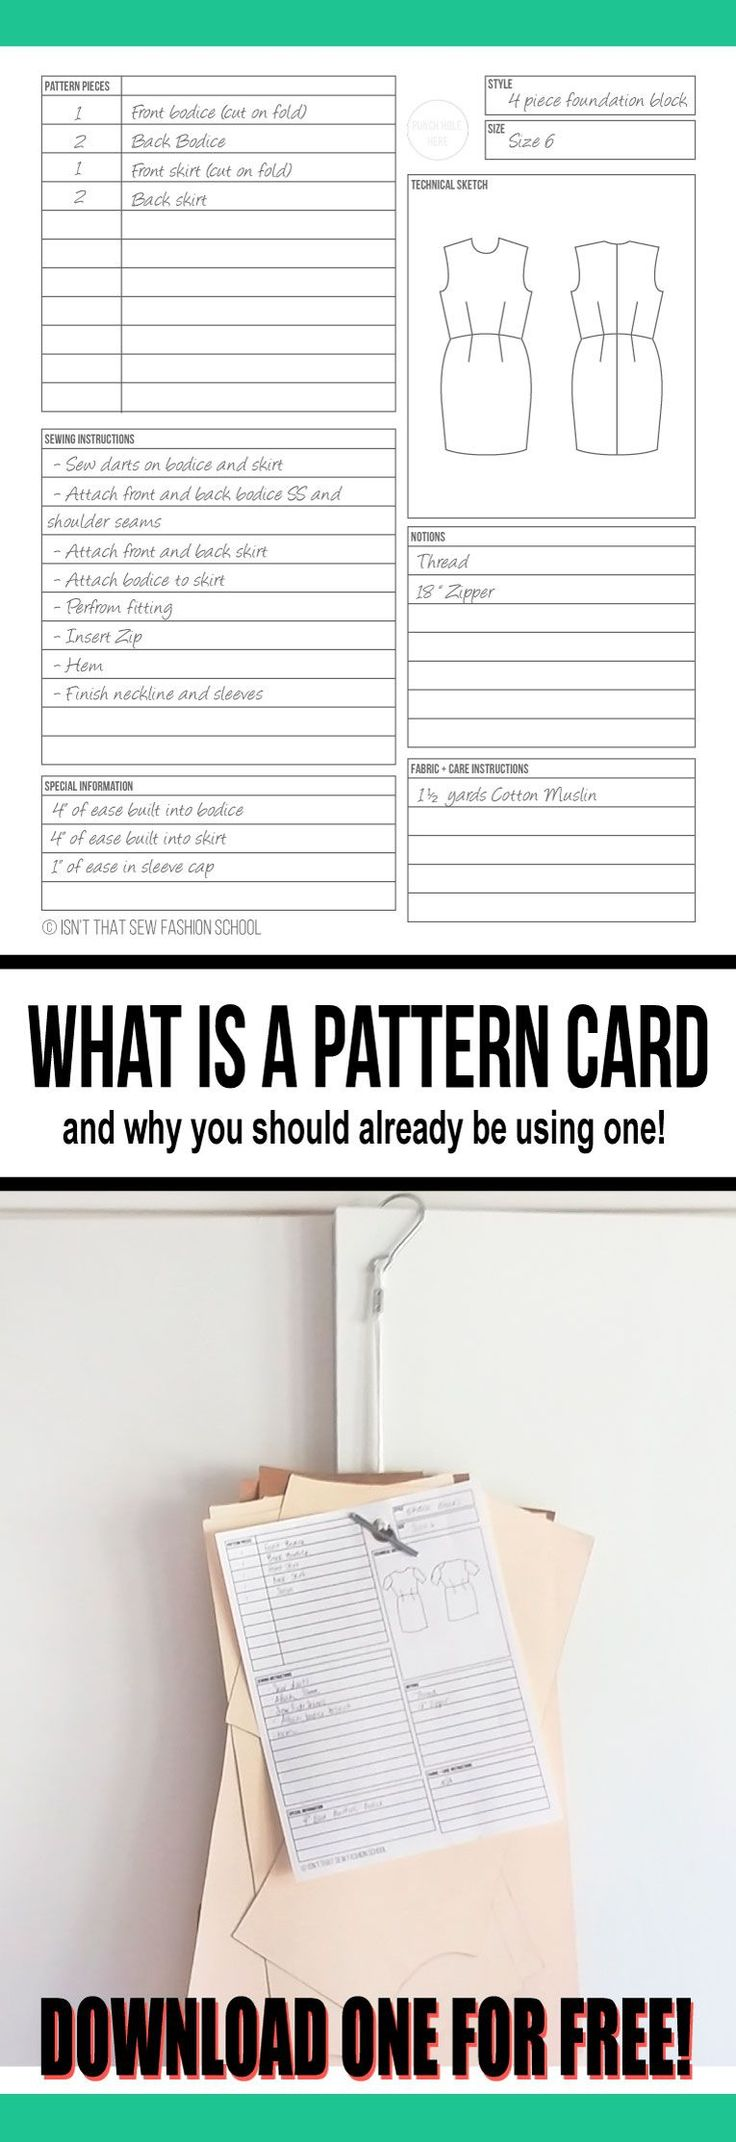 Find out what a pattern card is and why you should already be using one!